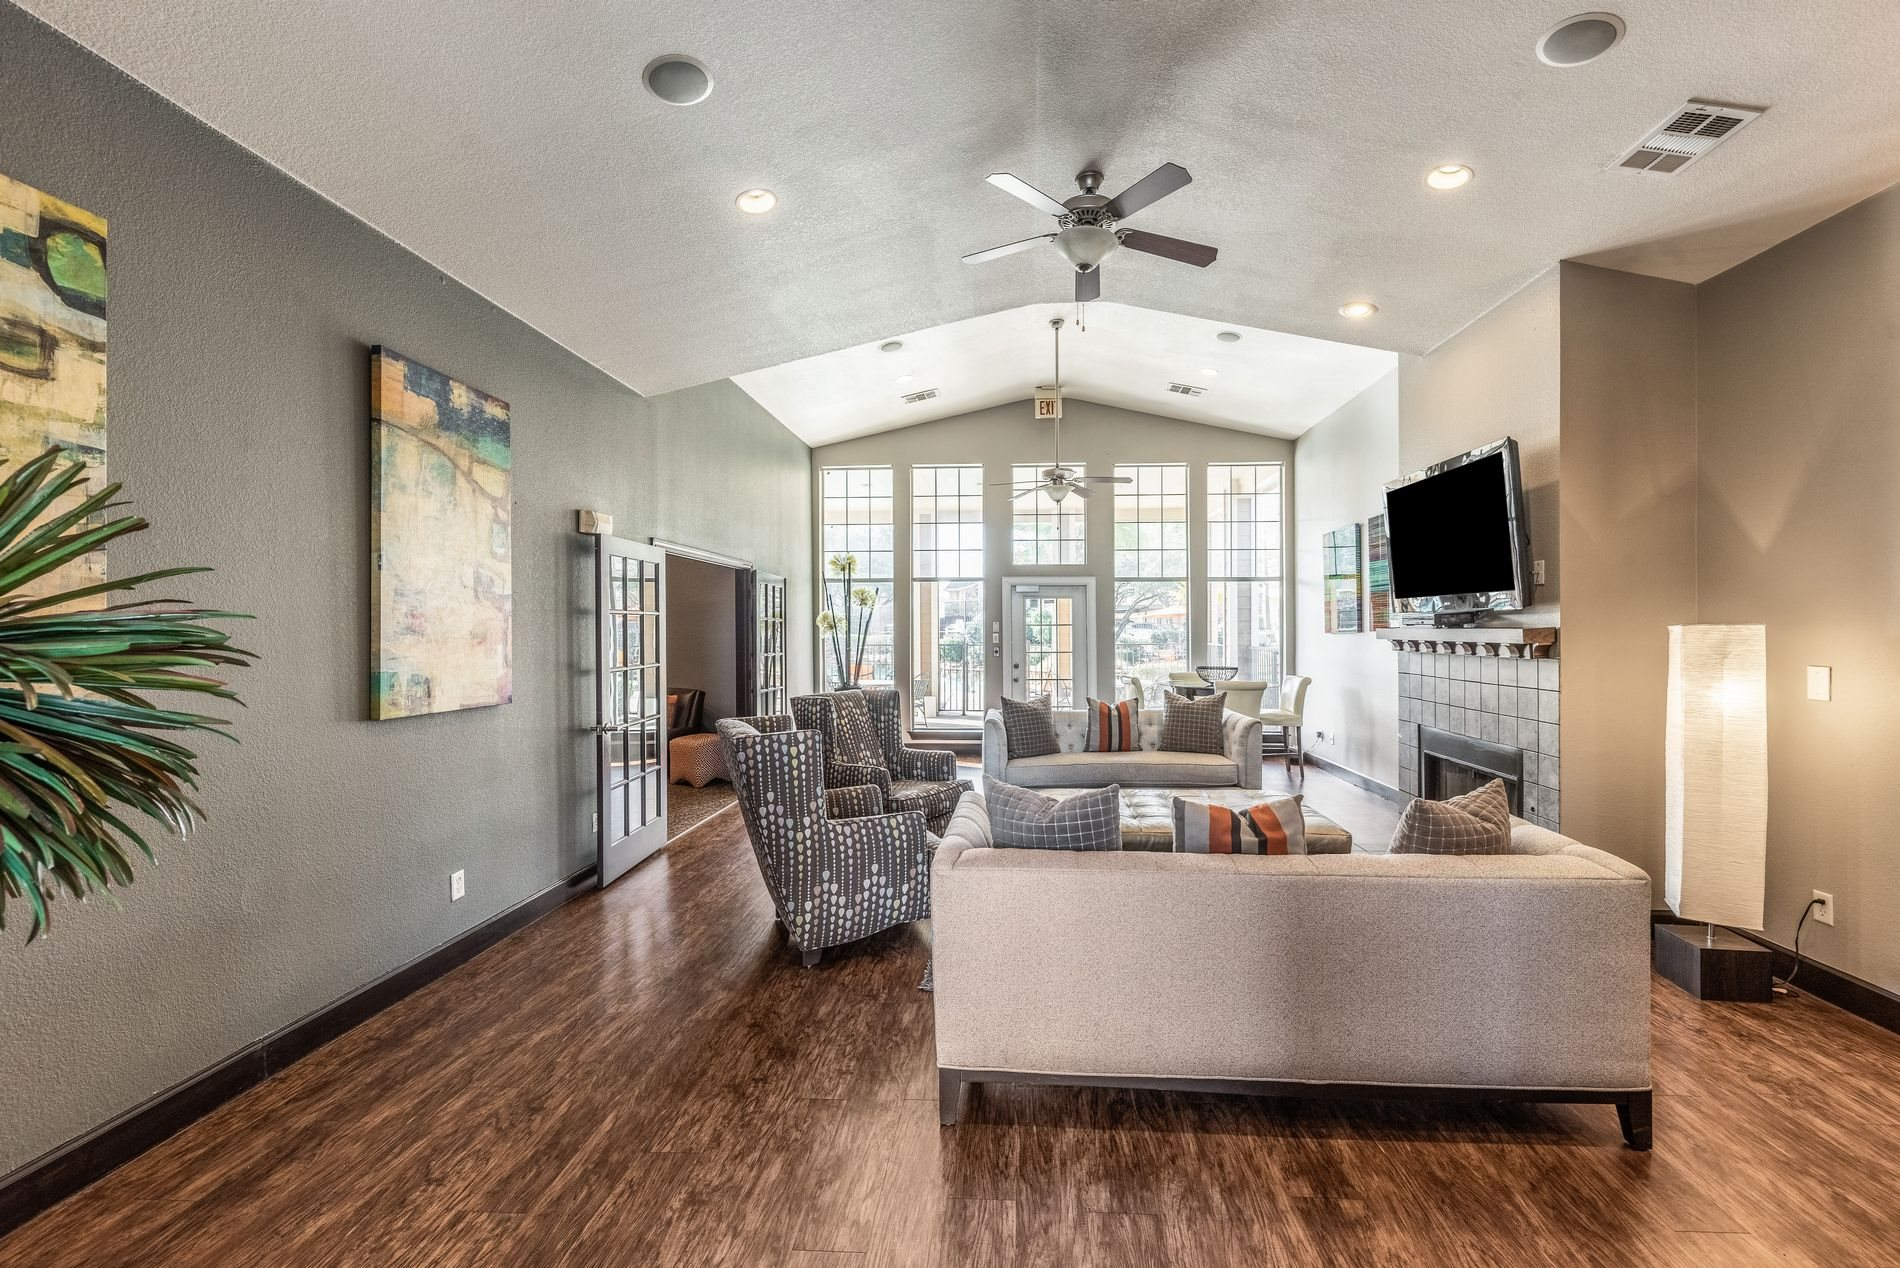 Open Floor Plans at Station 3700 Apartment Homes in Euless, Texas